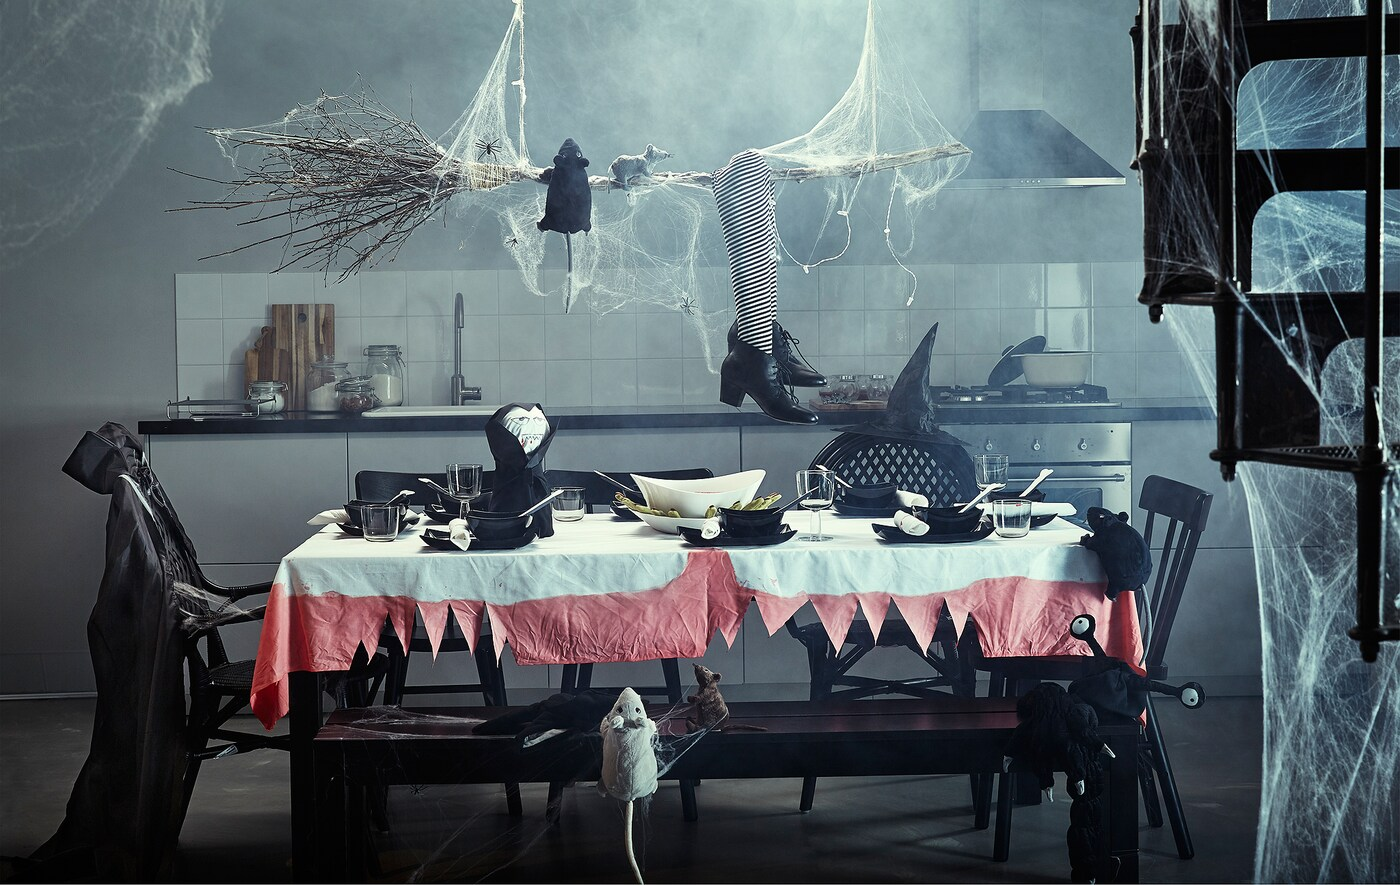 A kitchen with a large table that is full of Halloween decorations.